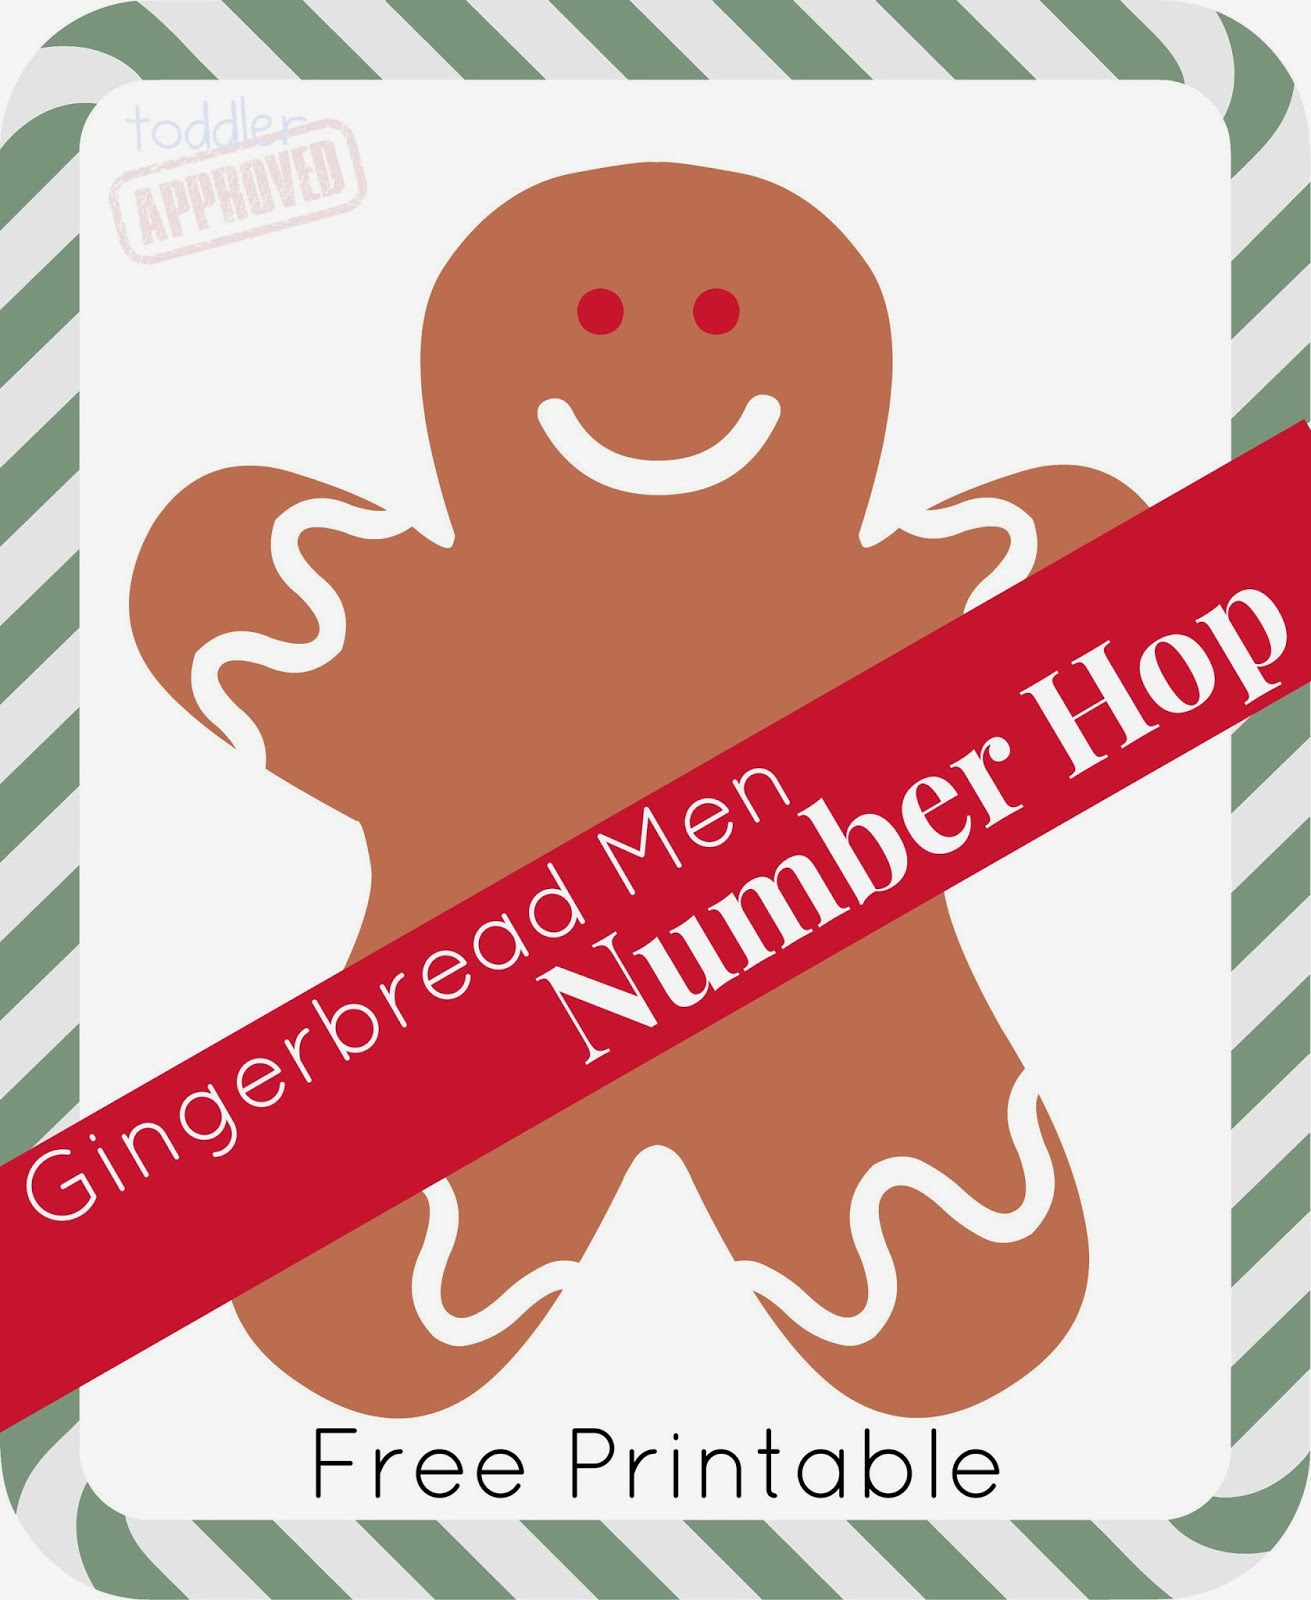 Toddler Approved Gingerbread Men Number Hop